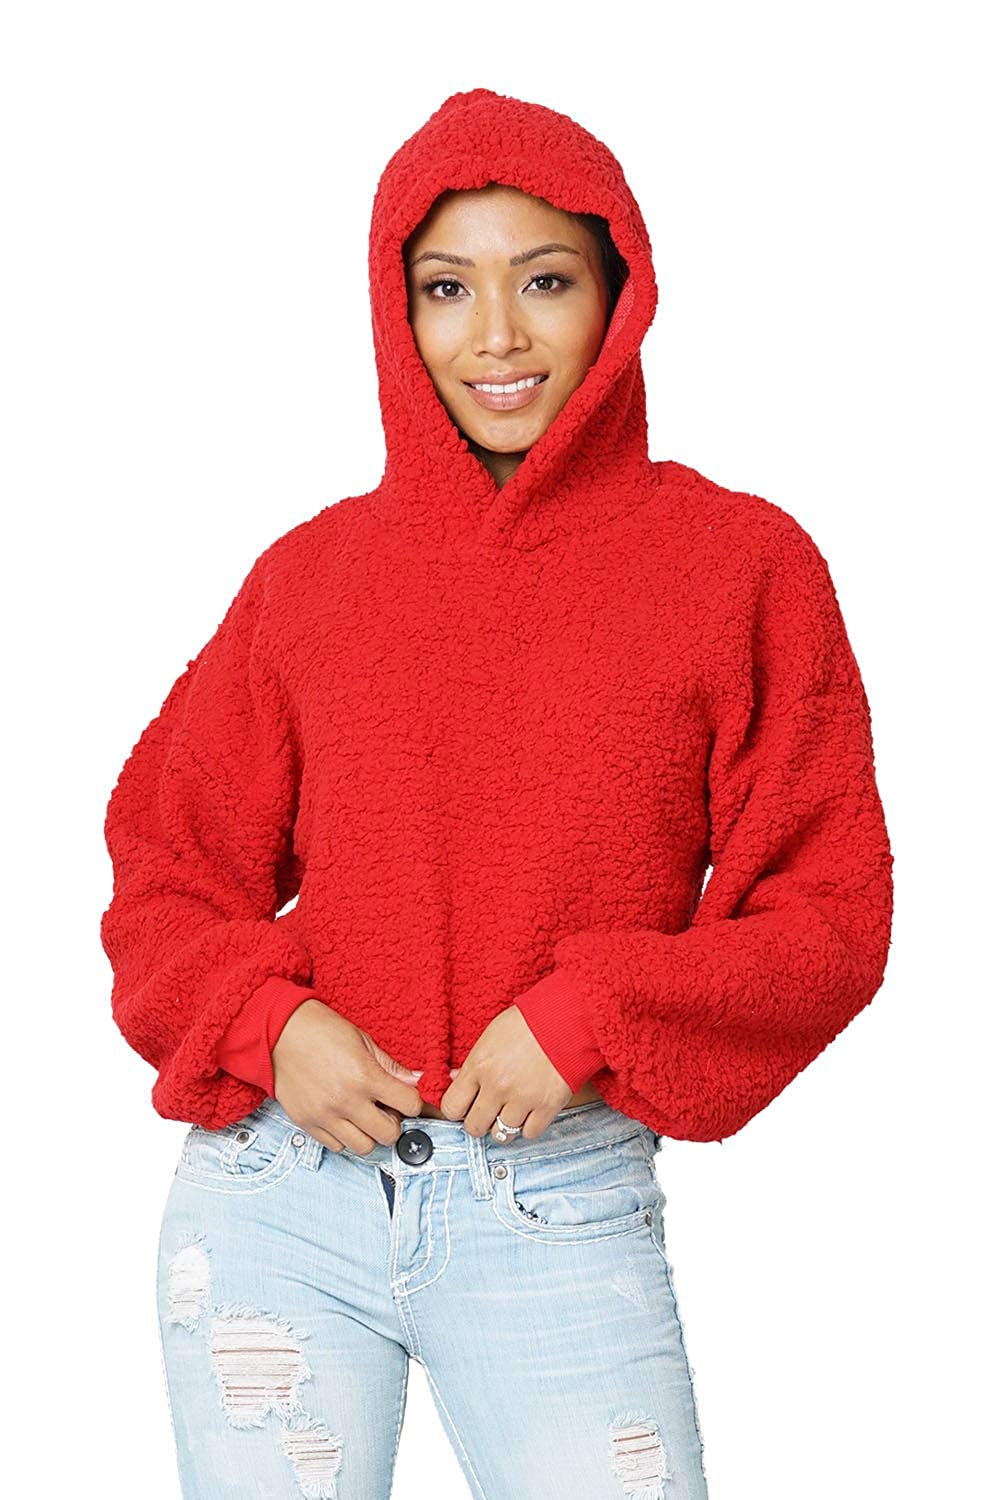 Carprinass Women's Sherpa Cropped Hoodie Teddy Fuzzy Pullover Sweatshirts Tops CS-0143